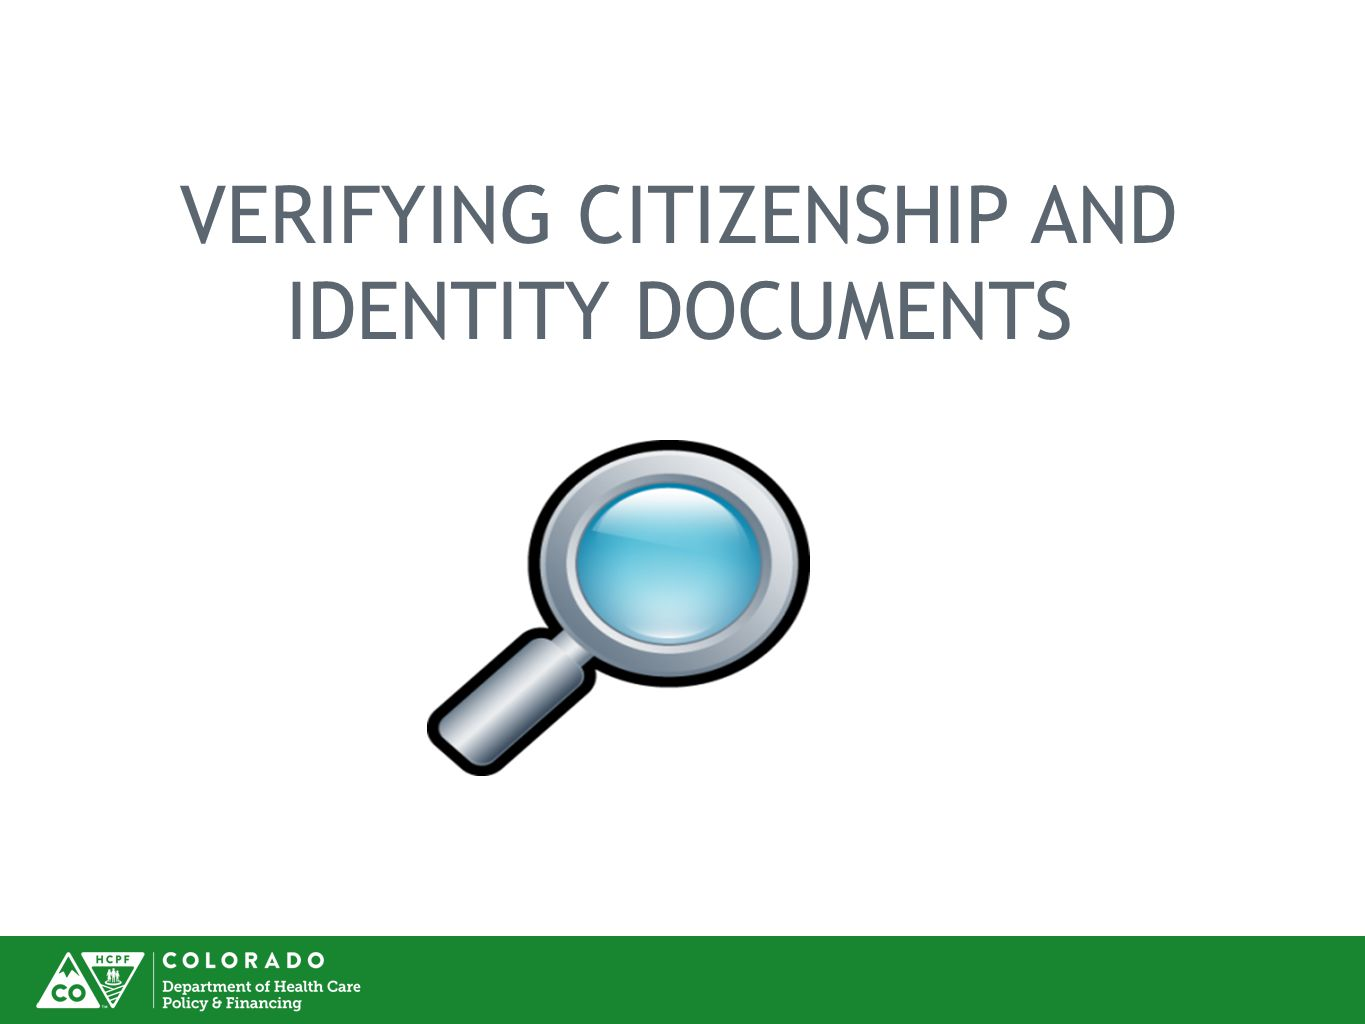 VERIFYING CITIZENSHIP AND IDENTITY DOCUMENTS